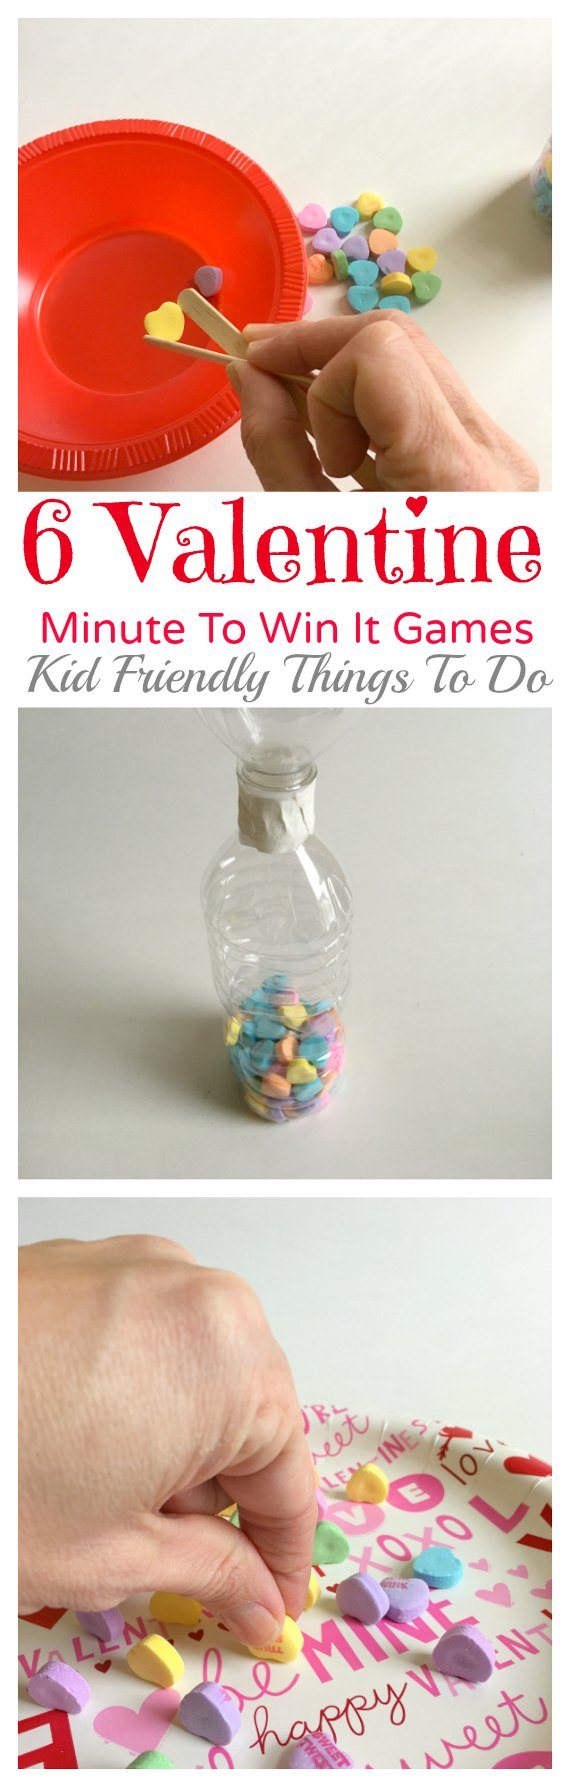 our minute to win it valentines day party games kidfriendlythingstodocom - Valentine Minute To Win It Games